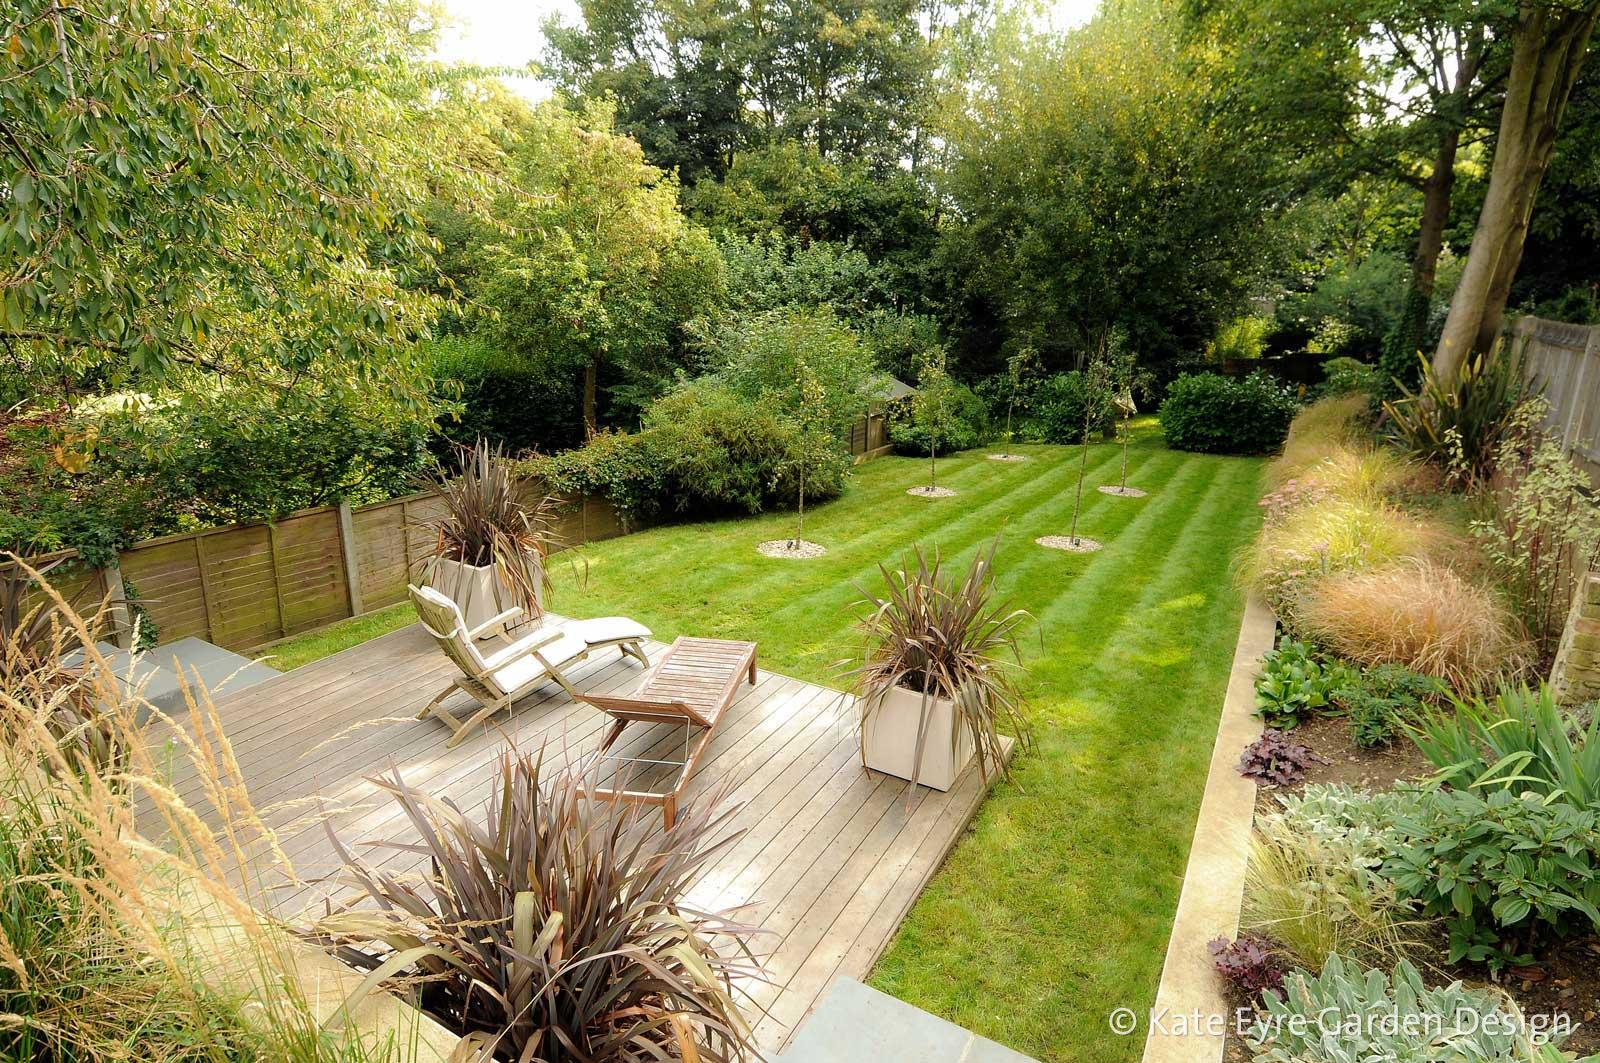 L shaped garden design ideas 1294006 - fast-to-one.info